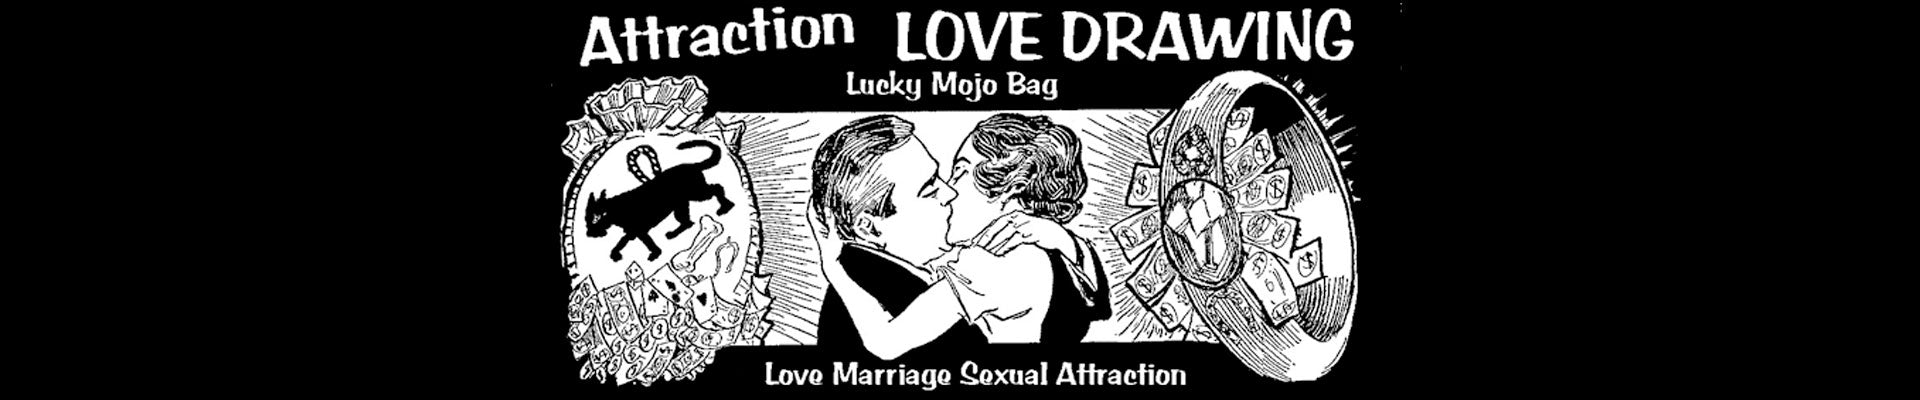 Love Attraction Mojo Bags